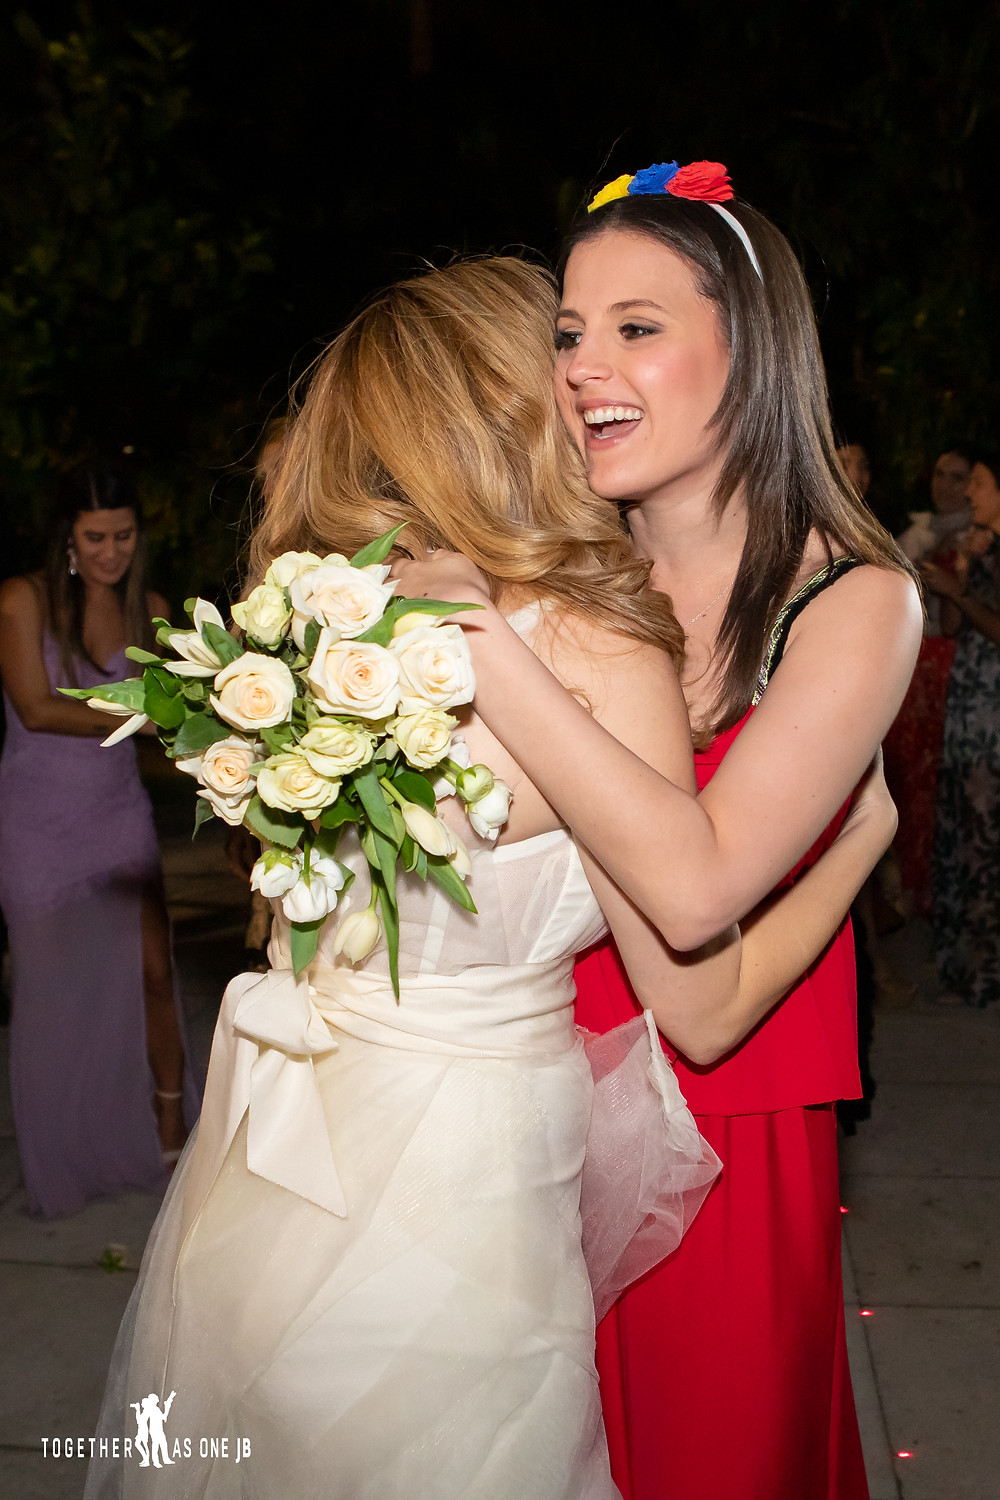 Bride hugs single girl who caught wedding bouquet during wedding reception at the M Building in Wynwood